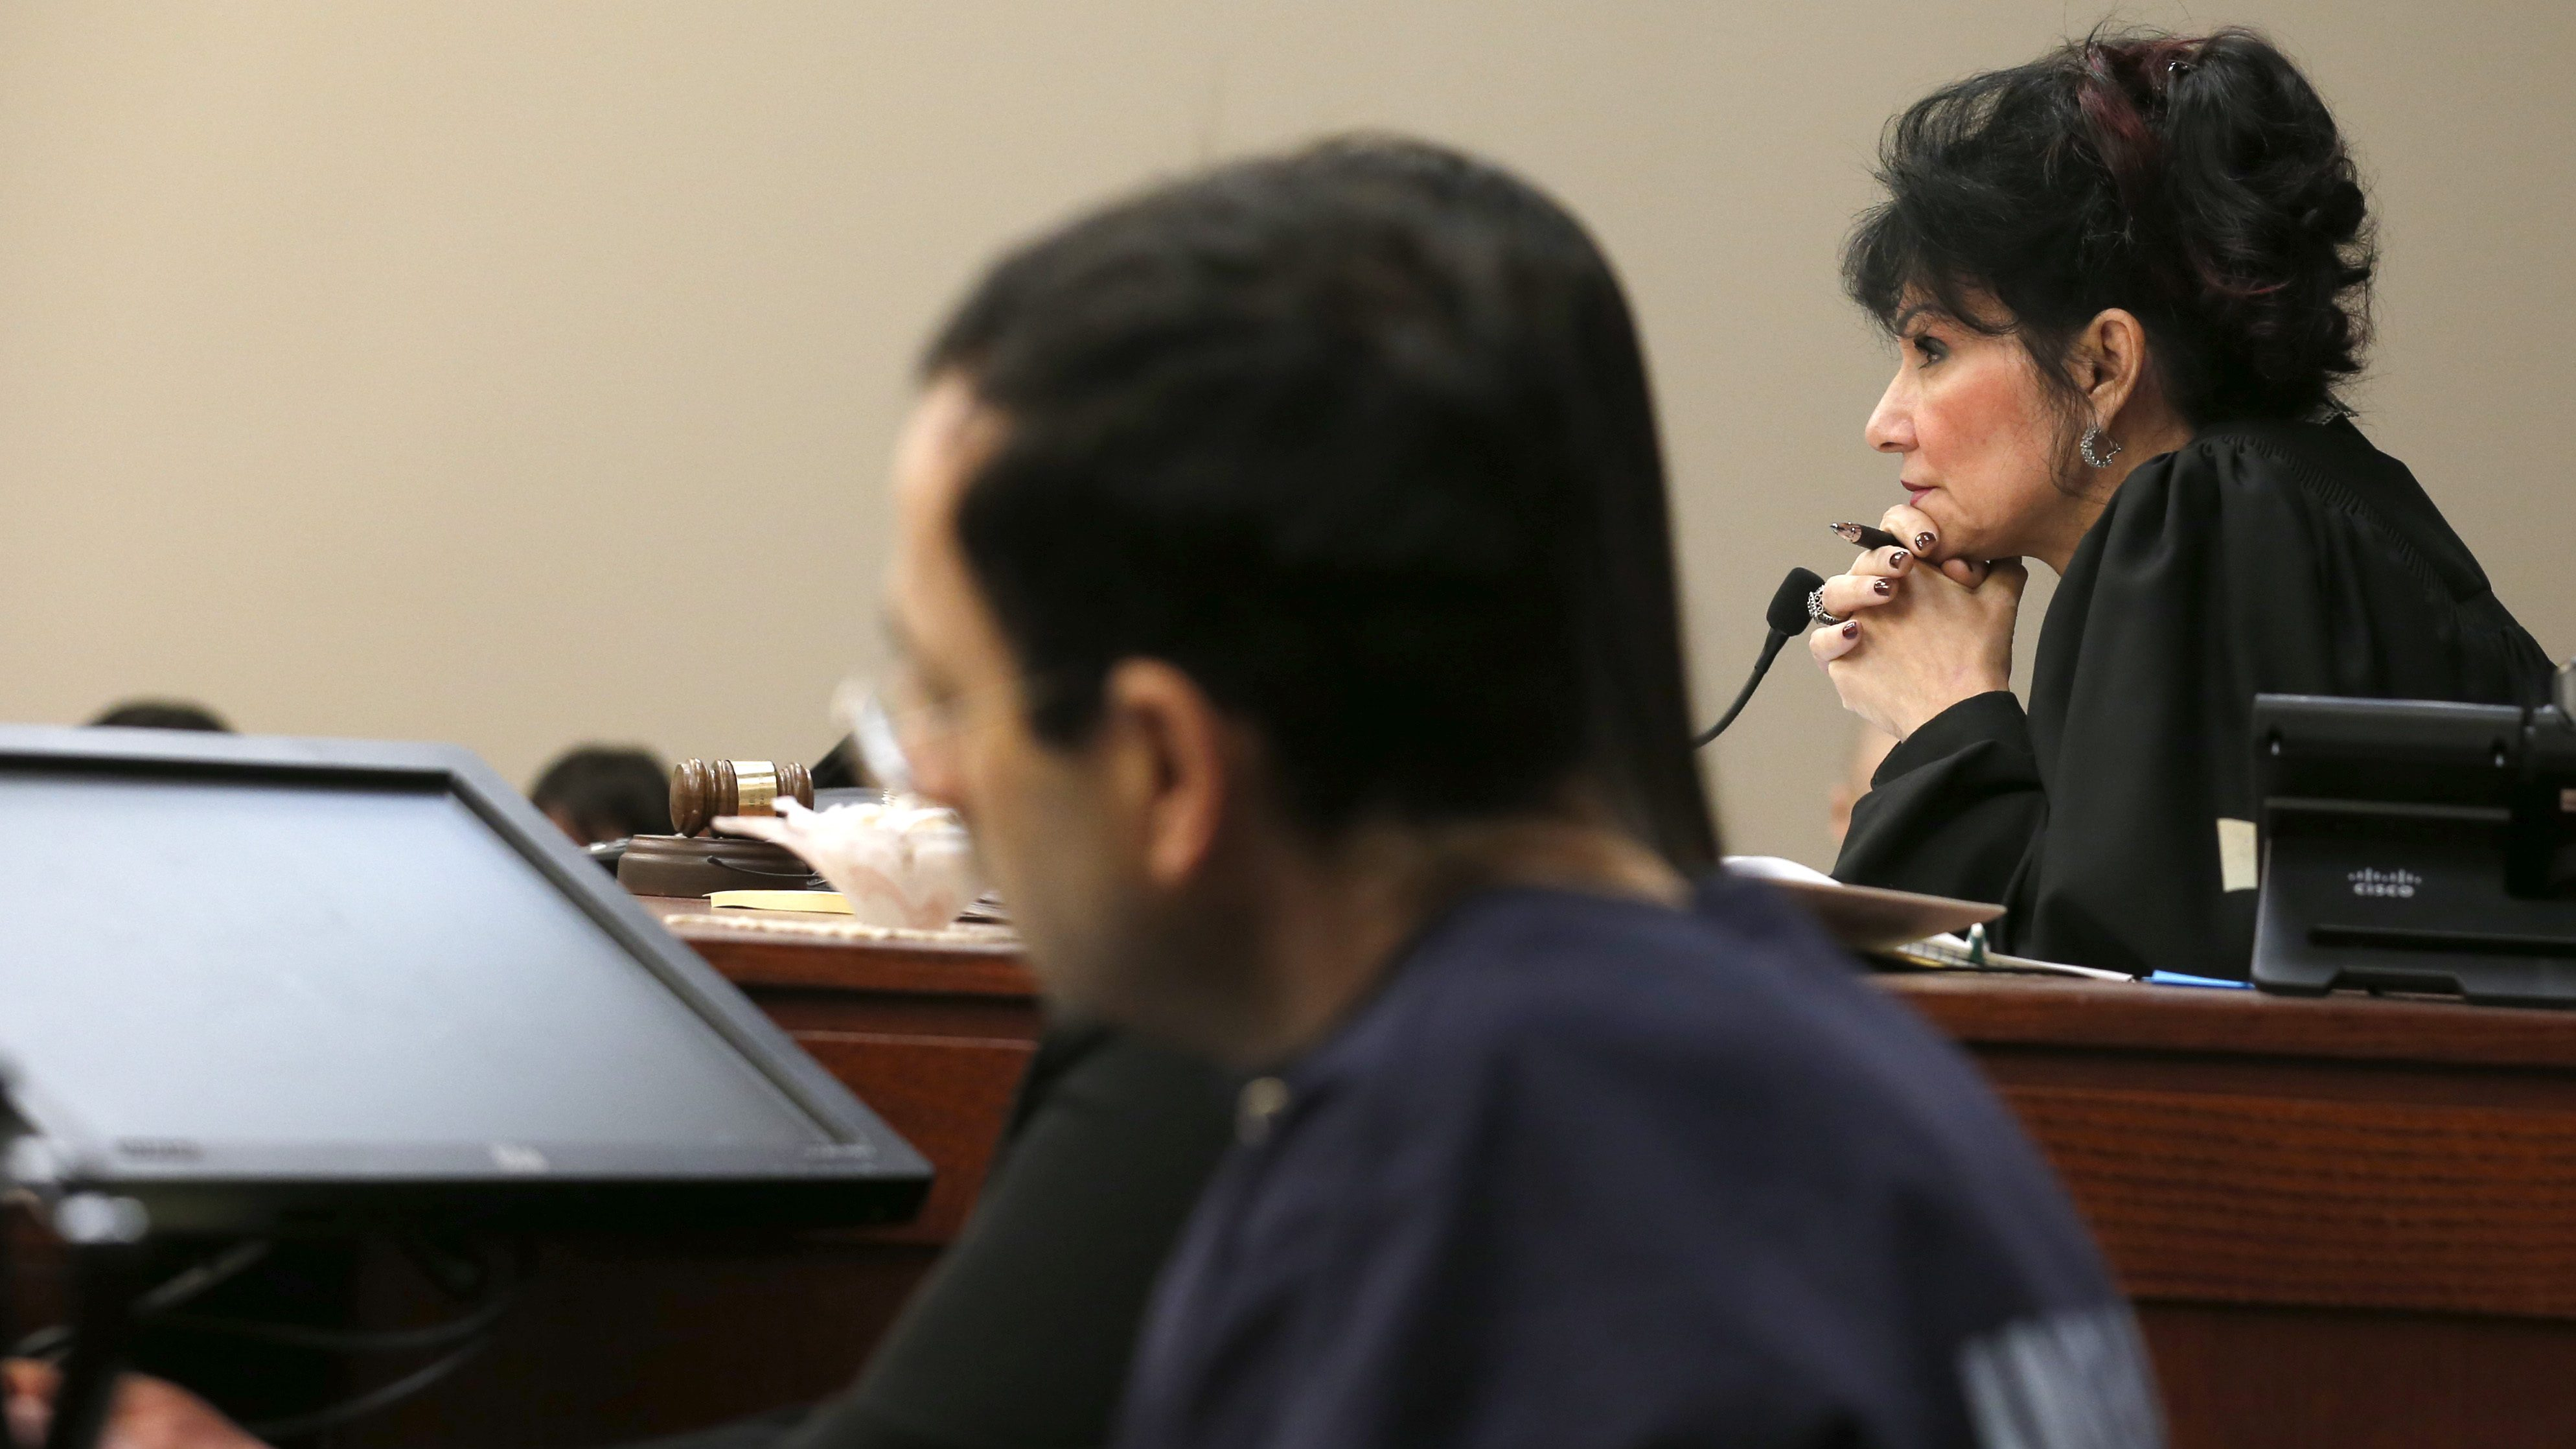 Judge Rosemarie Aquilina watches as Former Michigan State University and USA Gymnastics doctor Larry Nassar listens to impact statements during the sentencing phase in Ingham County Circuit Court on January 24, 2018 in Lansing, Michigan.